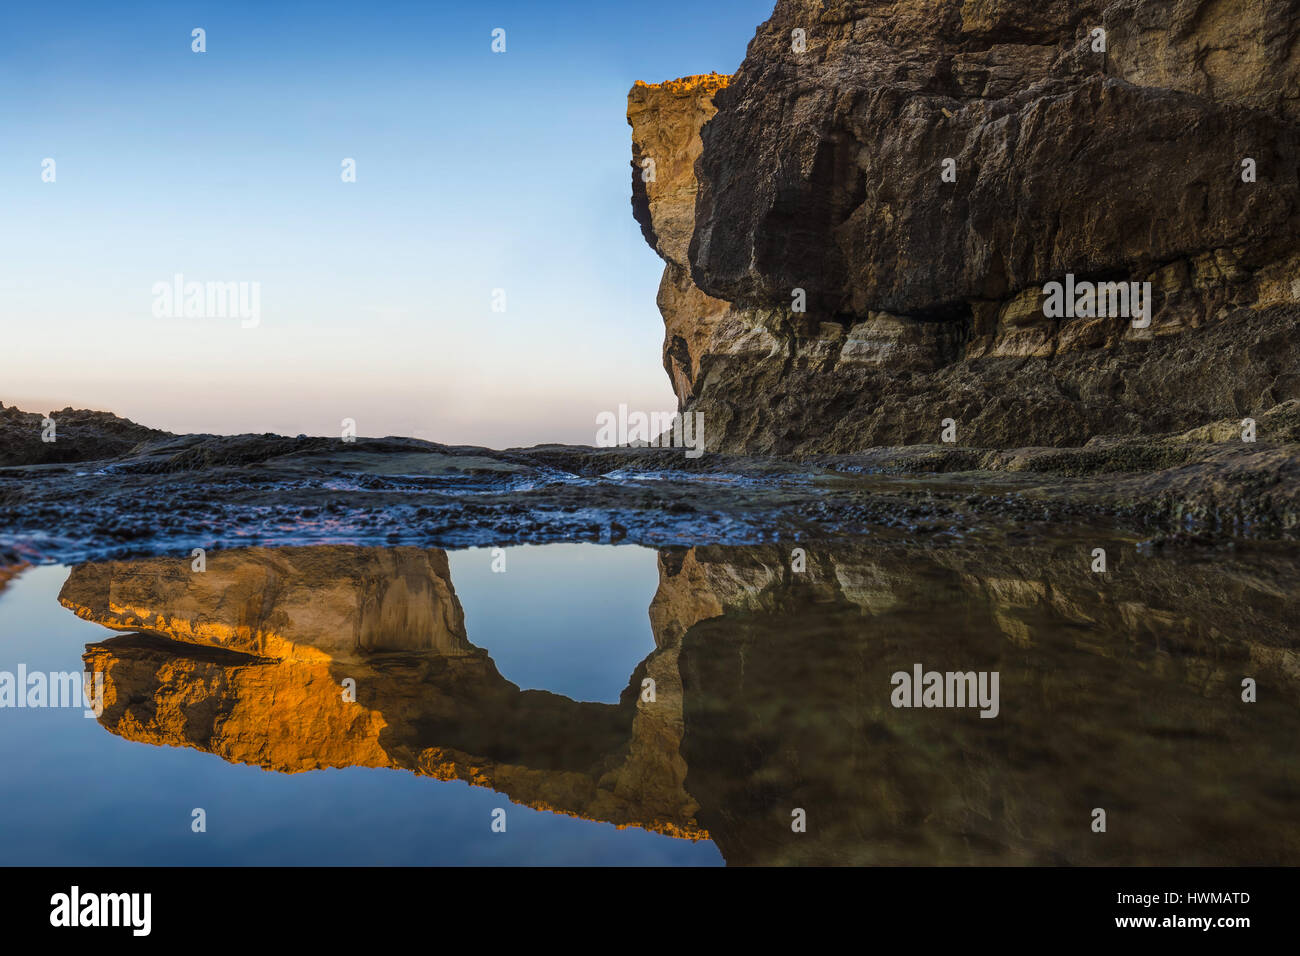 Gozo, Malta - Sunriseat the beautiful Azure Window, a natural arch and famous landmark on the island of Gozo with - Stock Image